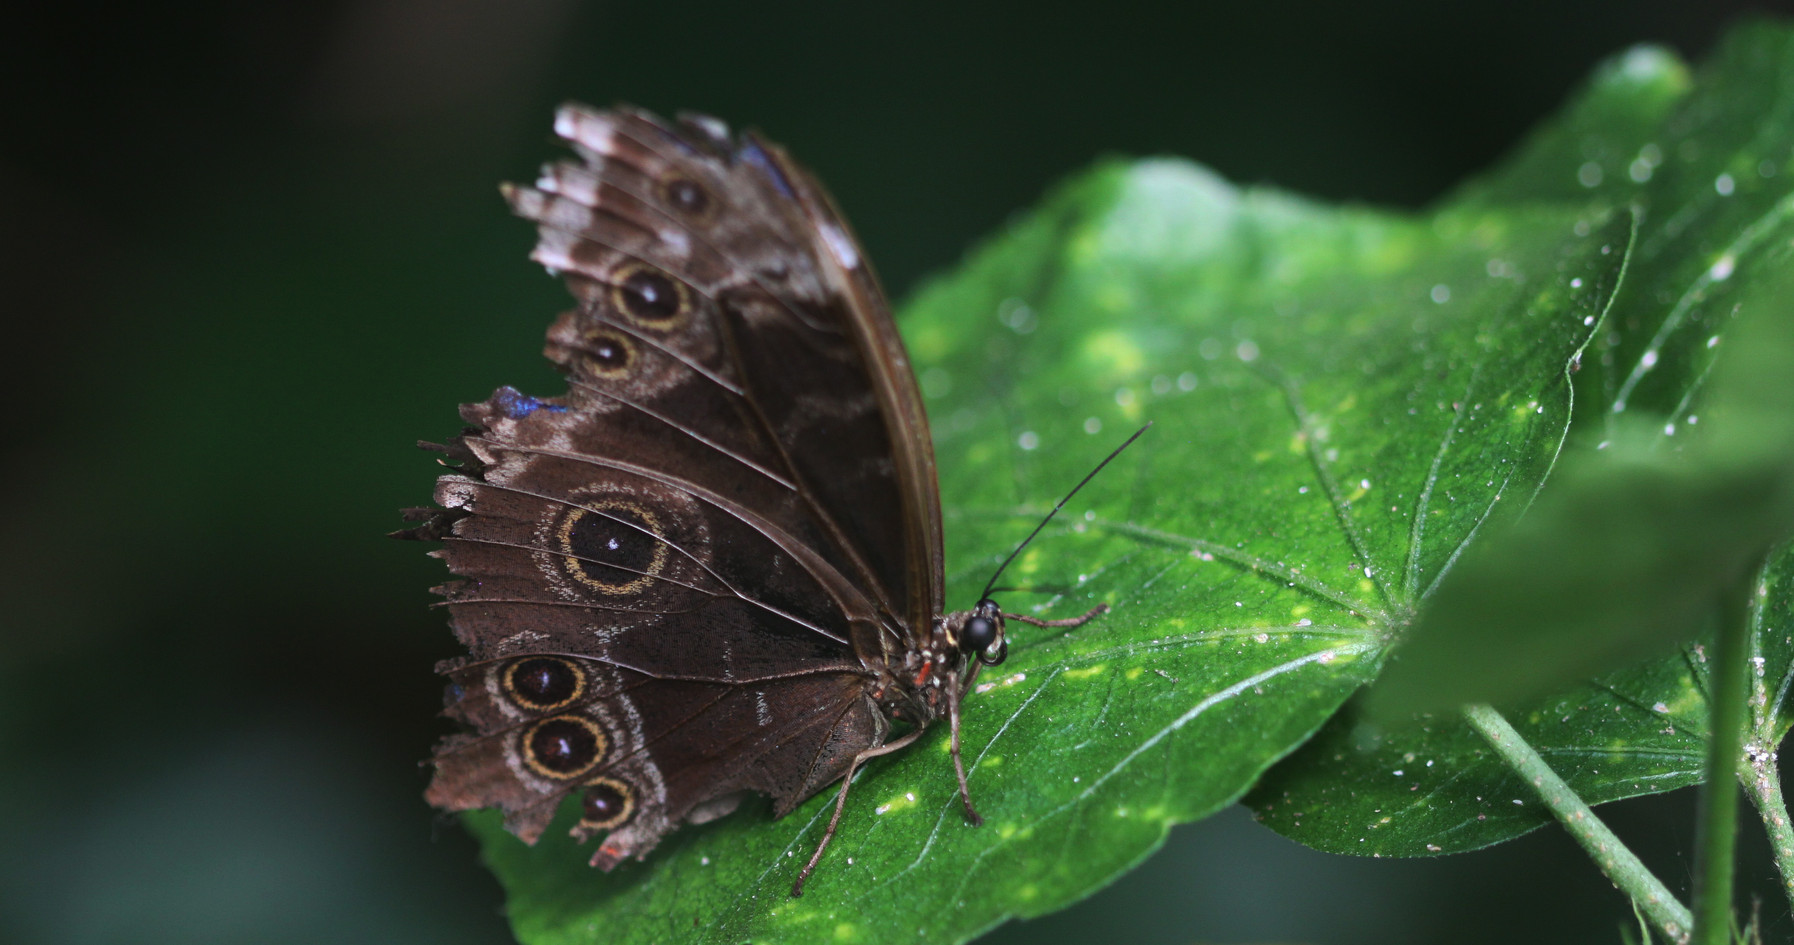 An Old And Grizzled Morpho